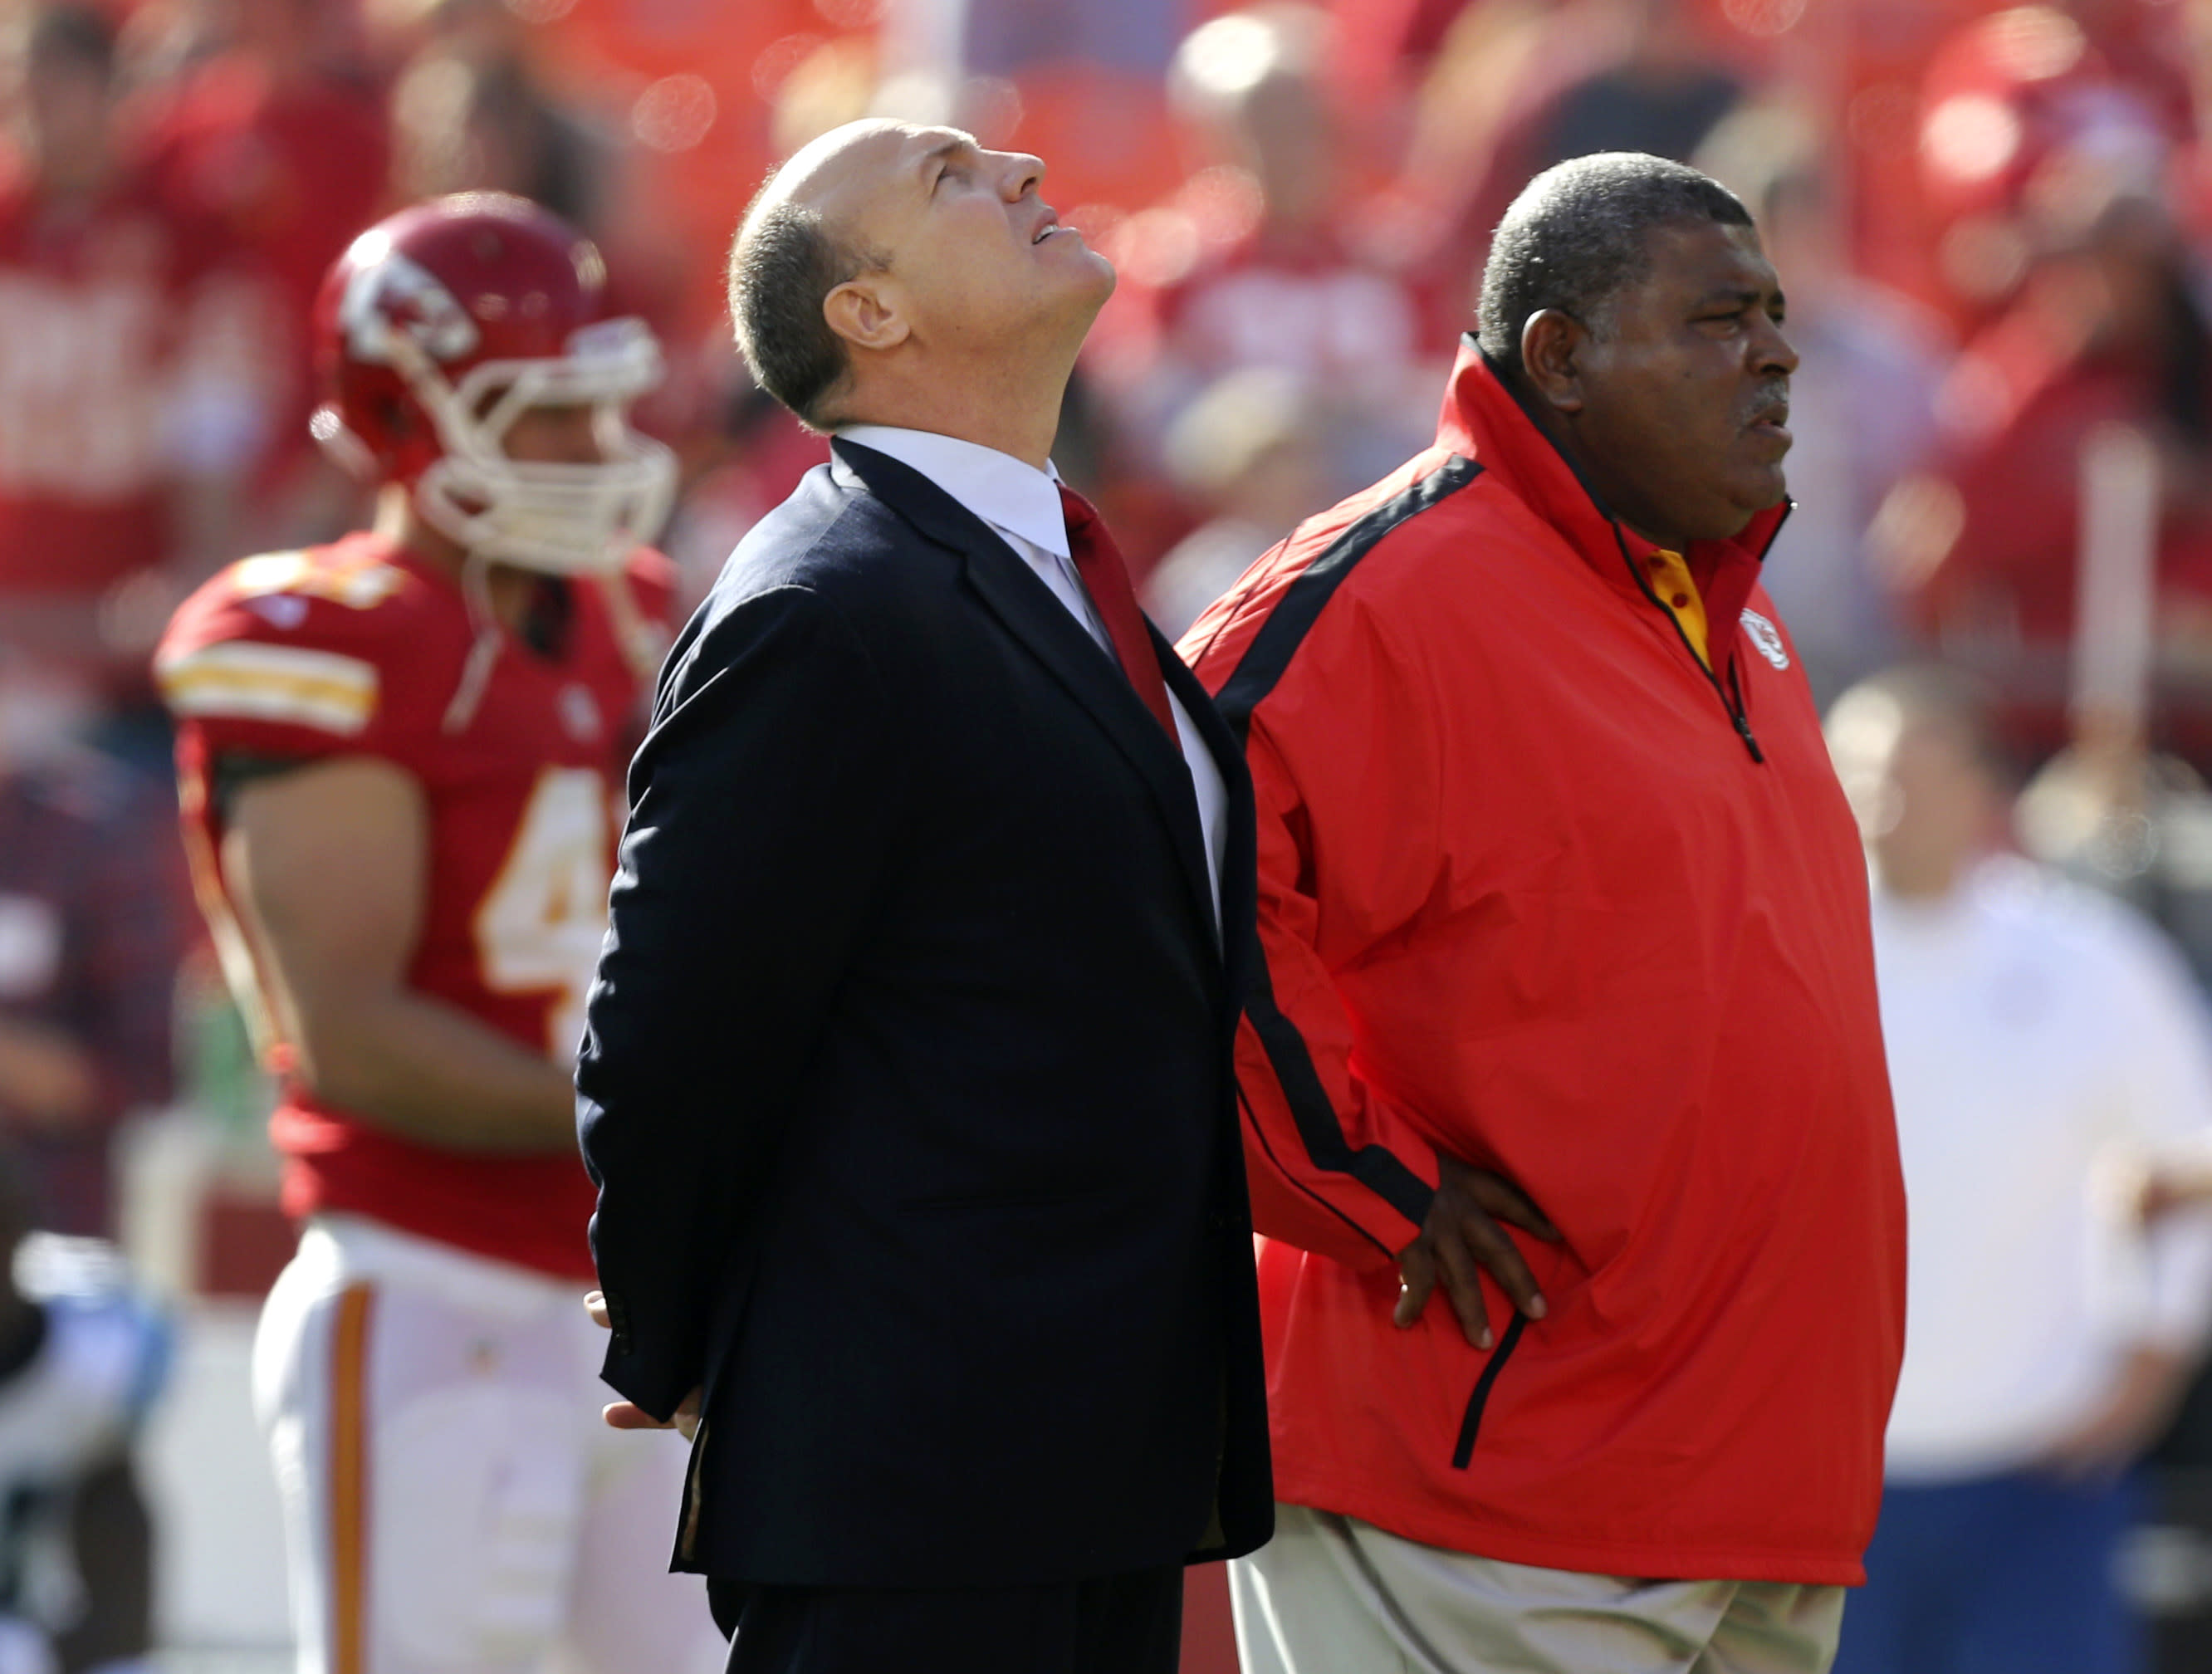 Kansas City Chiefs general manager Scott Pioli, left, and coach Romeo Crennel stand together before an NFL football game against the Carolina Panthers at Arrowhead Stadium in Kansas City, Mo., Sunday, Dec. 2, 2012. (AP Photo/Ed Zurga)